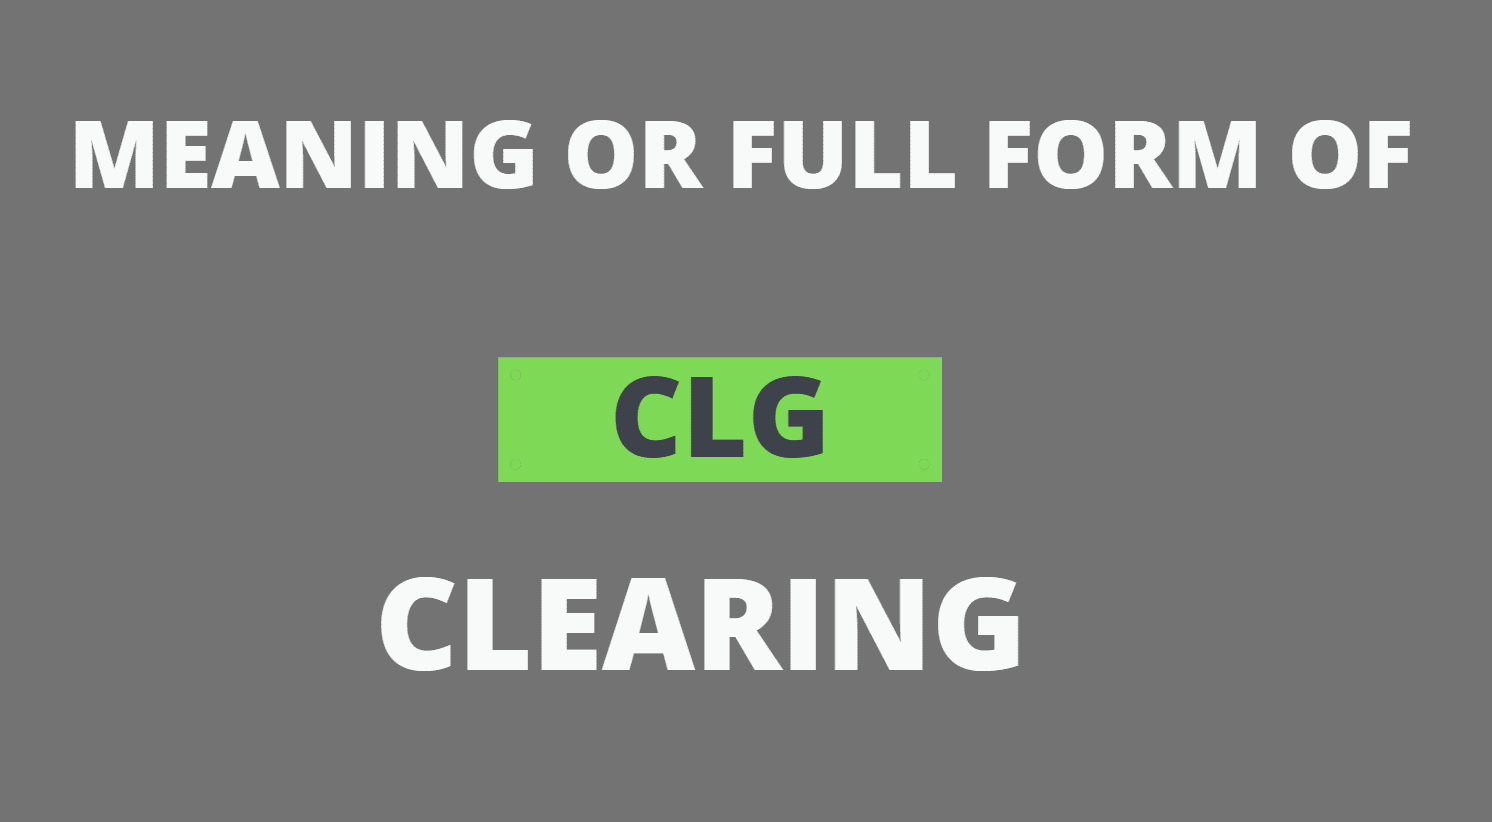 CLG full form and meaning in Bank Statement